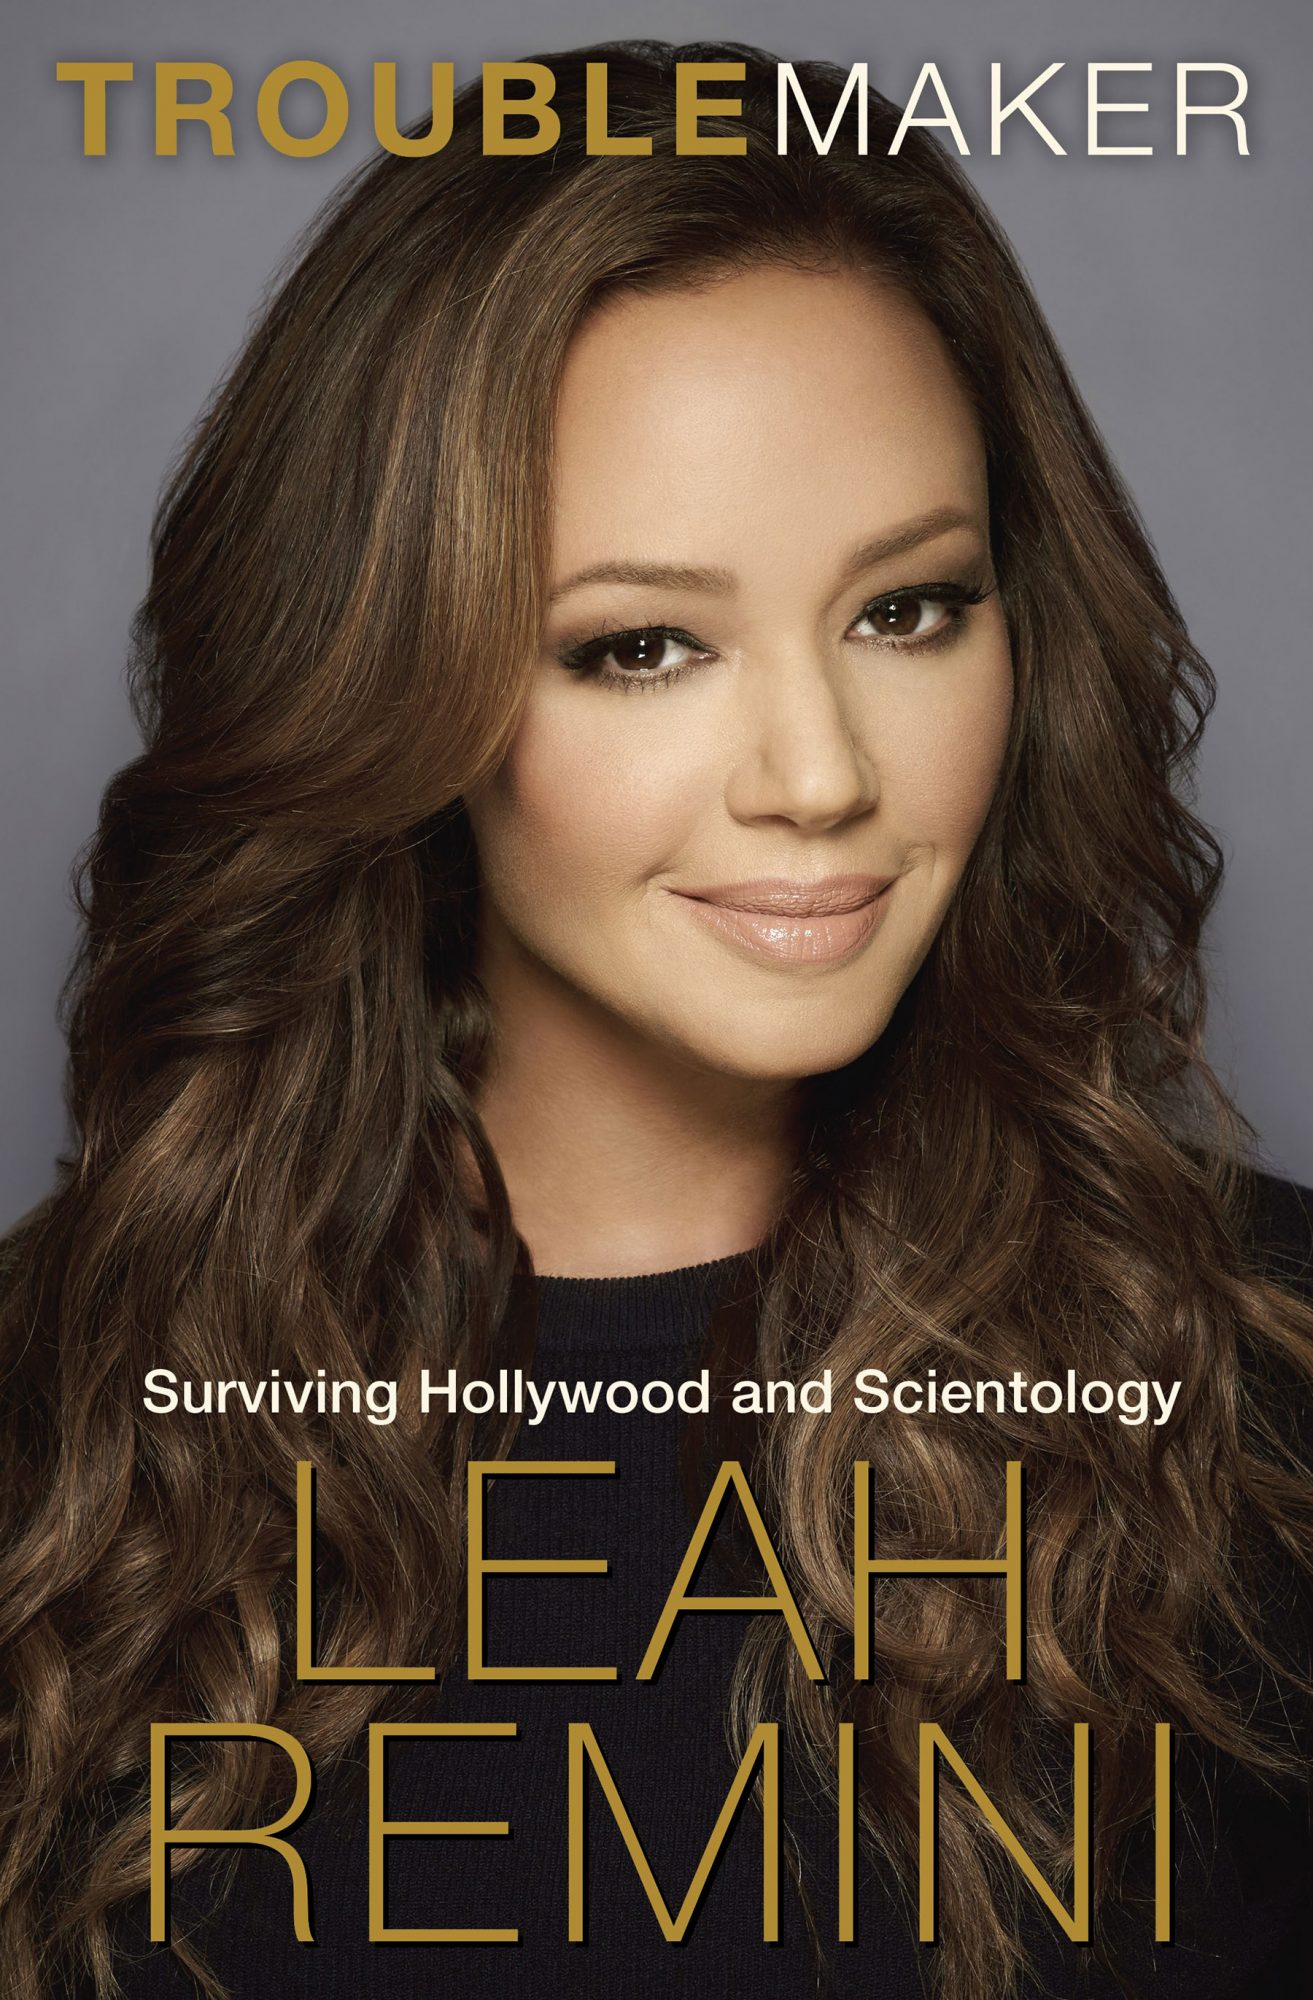 Troublemaker: Surviving Hollywood and Scientology (11/3/15)by Leah Remini